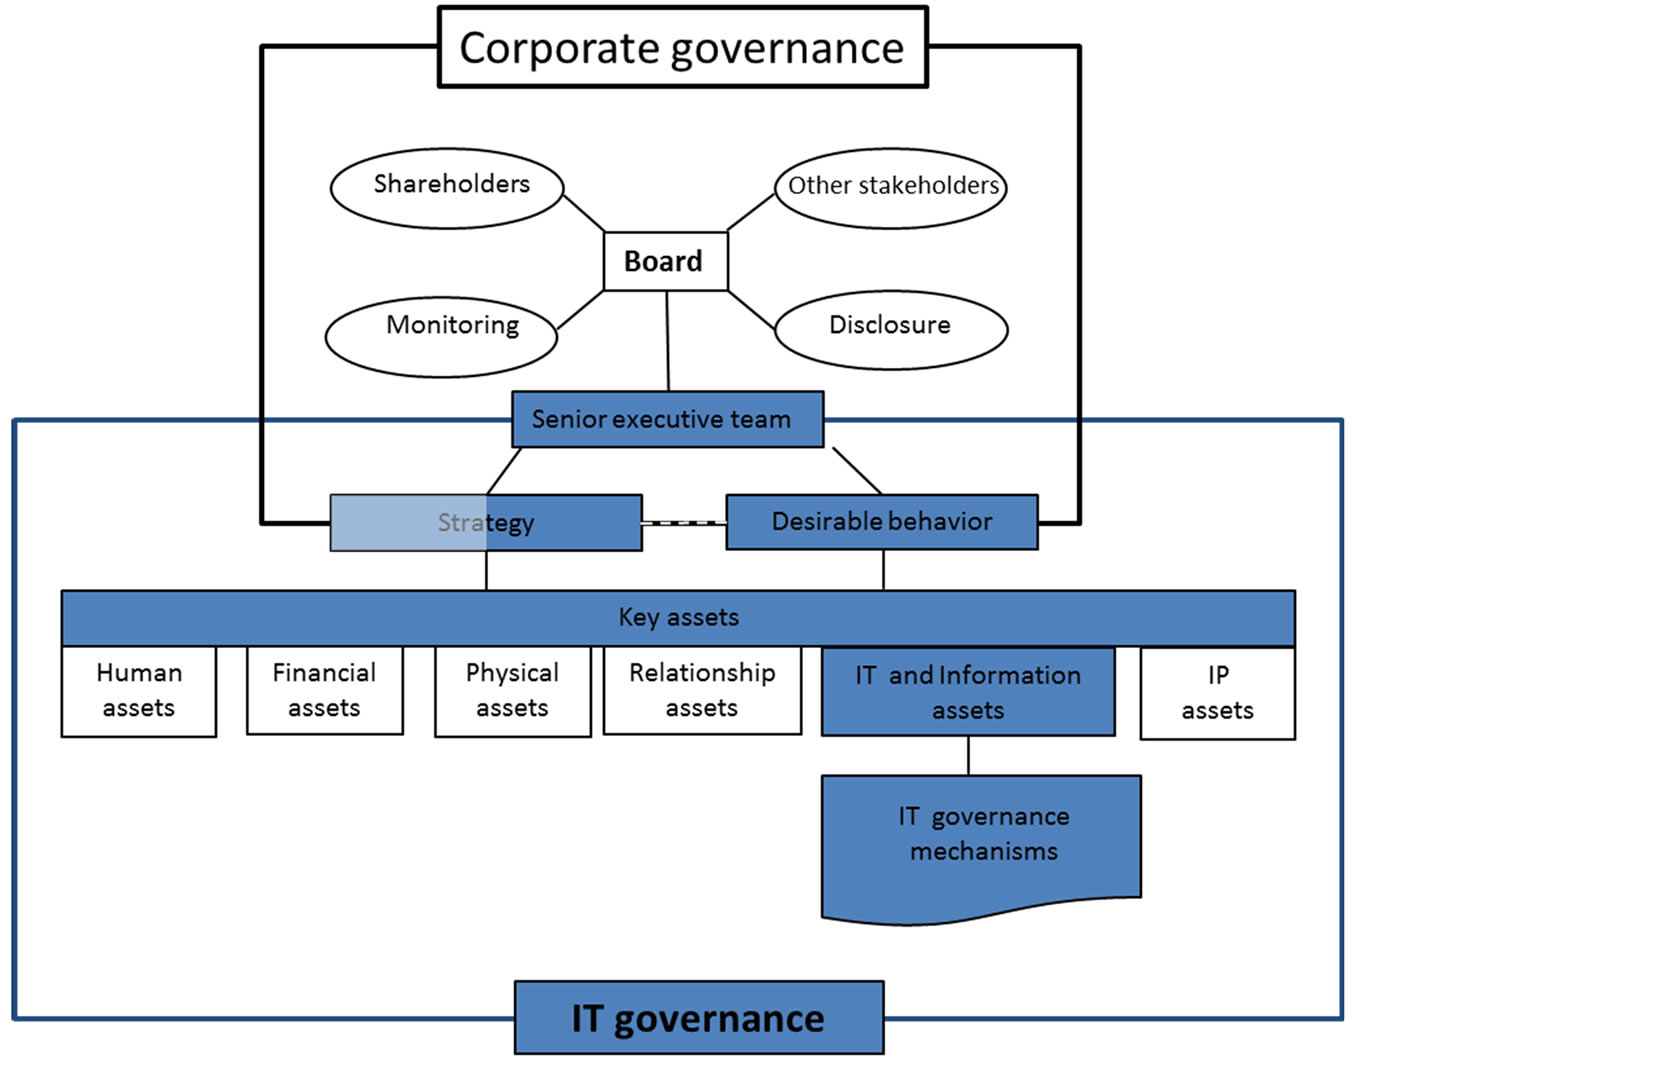 research paper on corporate governance This paper, which introduces the special issue on corporate governance co-sponsored by the review of financial studies and the national bureau of economic research (nber), reviews and comments on the state of corporate governance research.